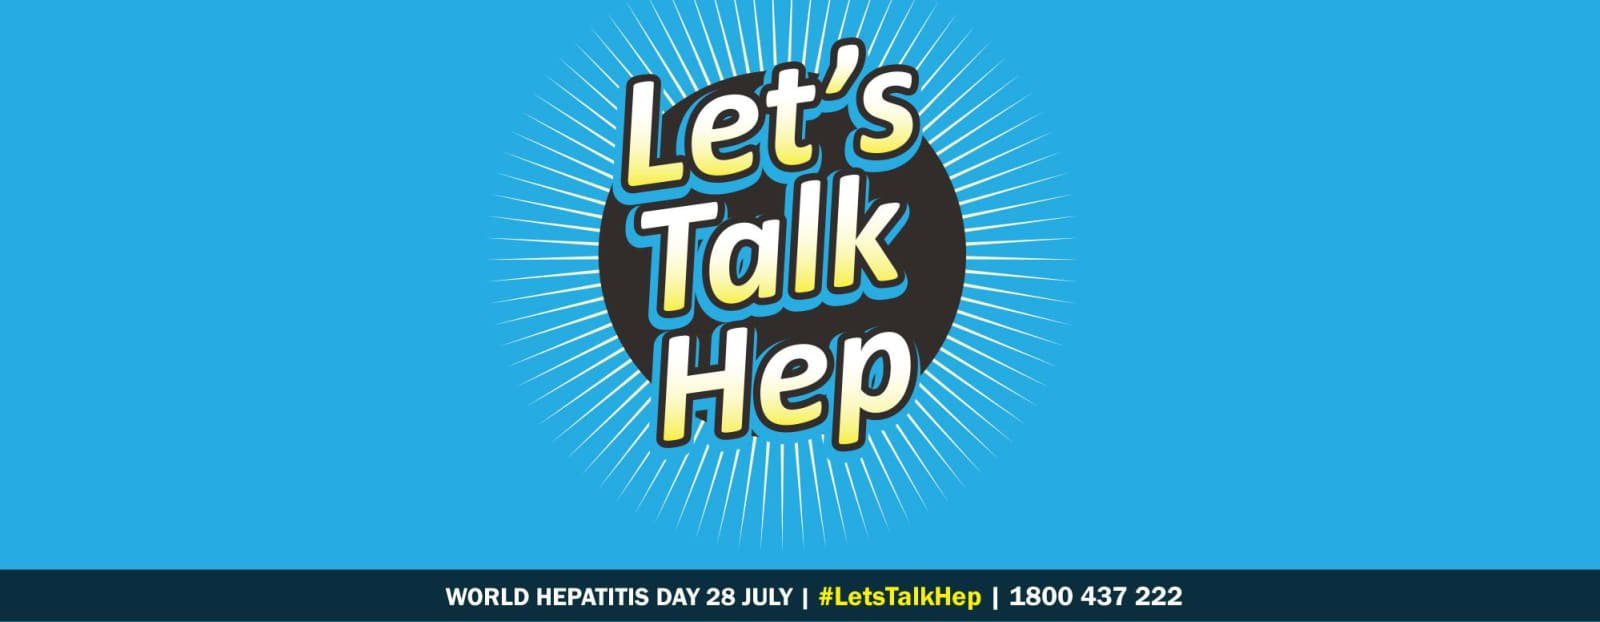 Let's Talk Hep on World Hepatitis Day – 28 July